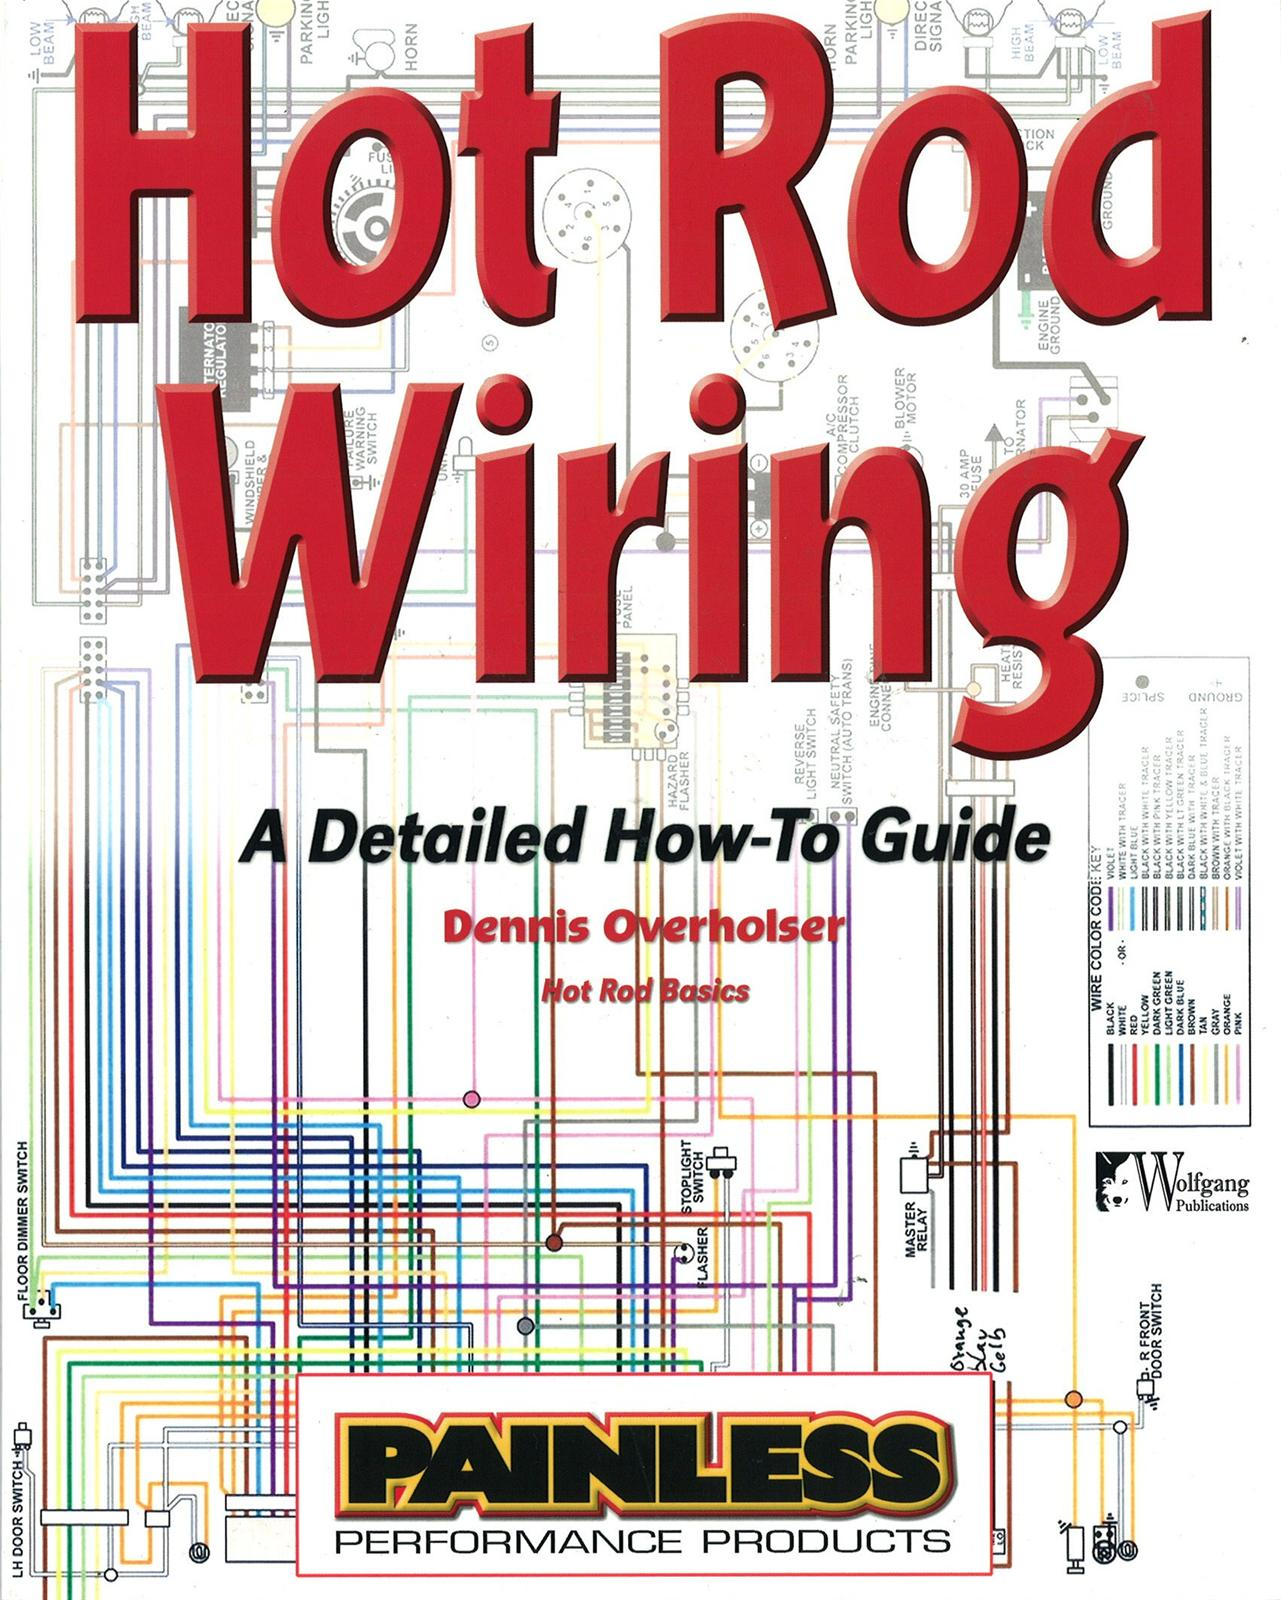 painless rod wiring diagram painless get free image about wiring diagram